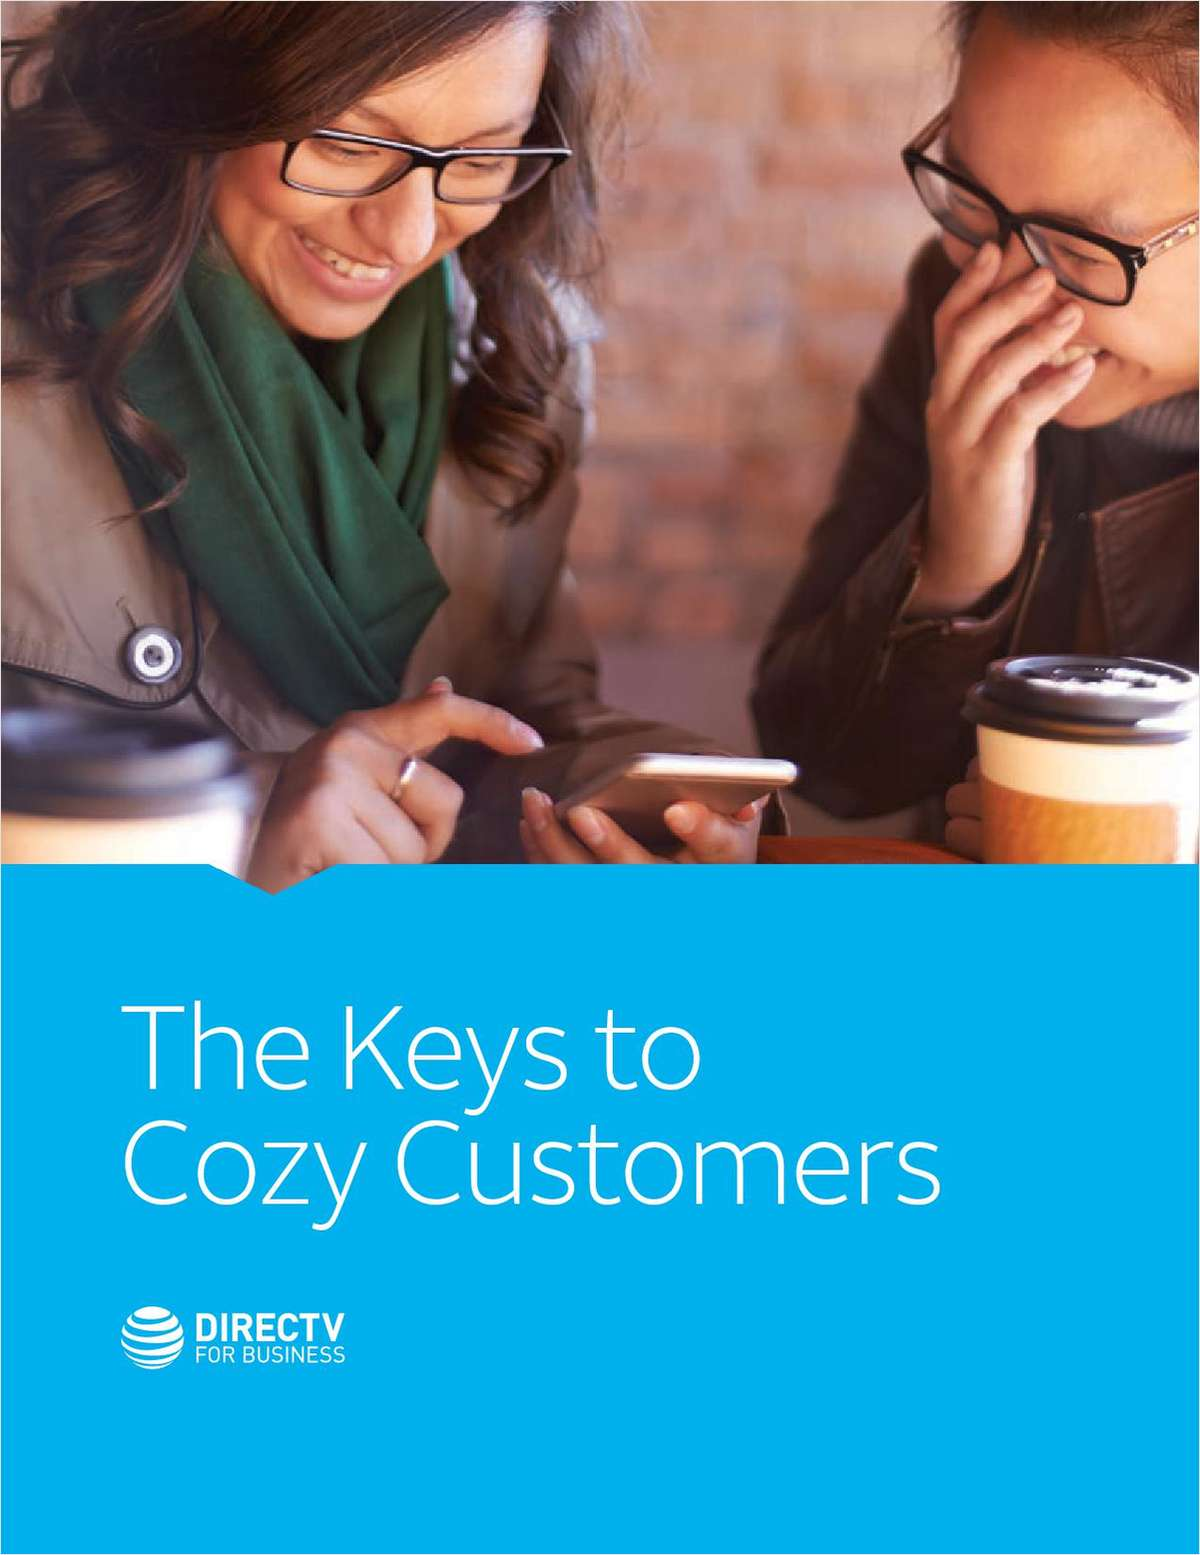 The Keys to Cozy Customers